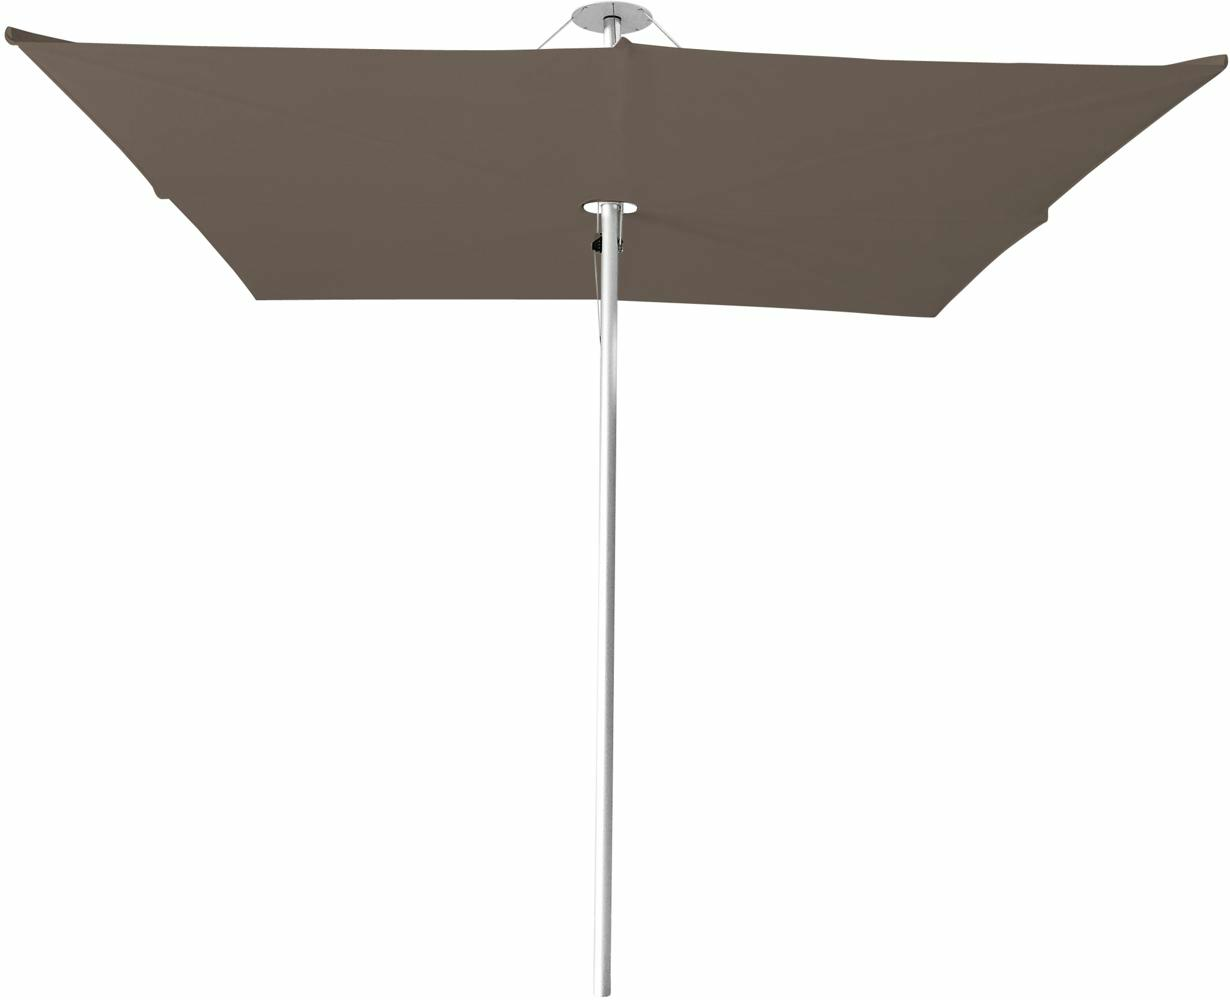 Infina canopy square 3 m in colour Taupe